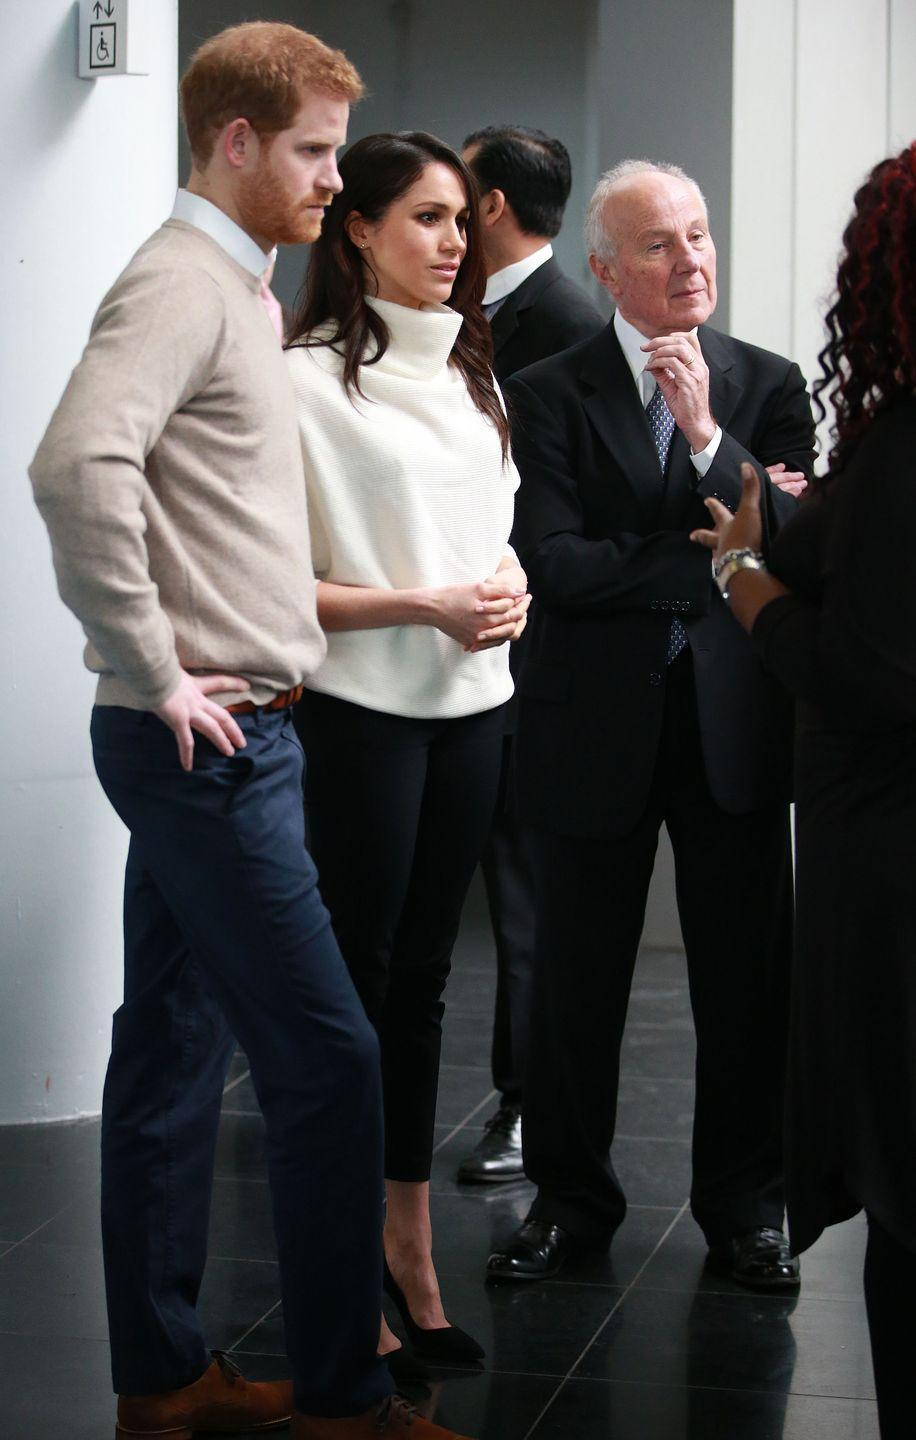 """<p>While inside Millennium Point during their royal visit to Birmingham, Markle gave us a better look at her white sweater by <a href=""""https://go.redirectingat.com?id=74968X1596630&url=https%3A%2F%2Fwww.allsaints.com%2Fwomen%2Fknitwear%2Fallsaints-ridley-jumper%2F%3Fcolour%3D4068%26category%3D26&sref=https%3A%2F%2Fwww.townandcountrymag.com%2Fstyle%2Ffashion-trends%2Fg3272%2Fmeghan-markle-preppy-style%2F"""" rel=""""nofollow noopener"""" target=""""_blank"""" data-ylk=""""slk:AllSaints"""" class=""""link rapid-noclick-resp"""">AllSaints</a> and Alexander Wang pants. </p>"""